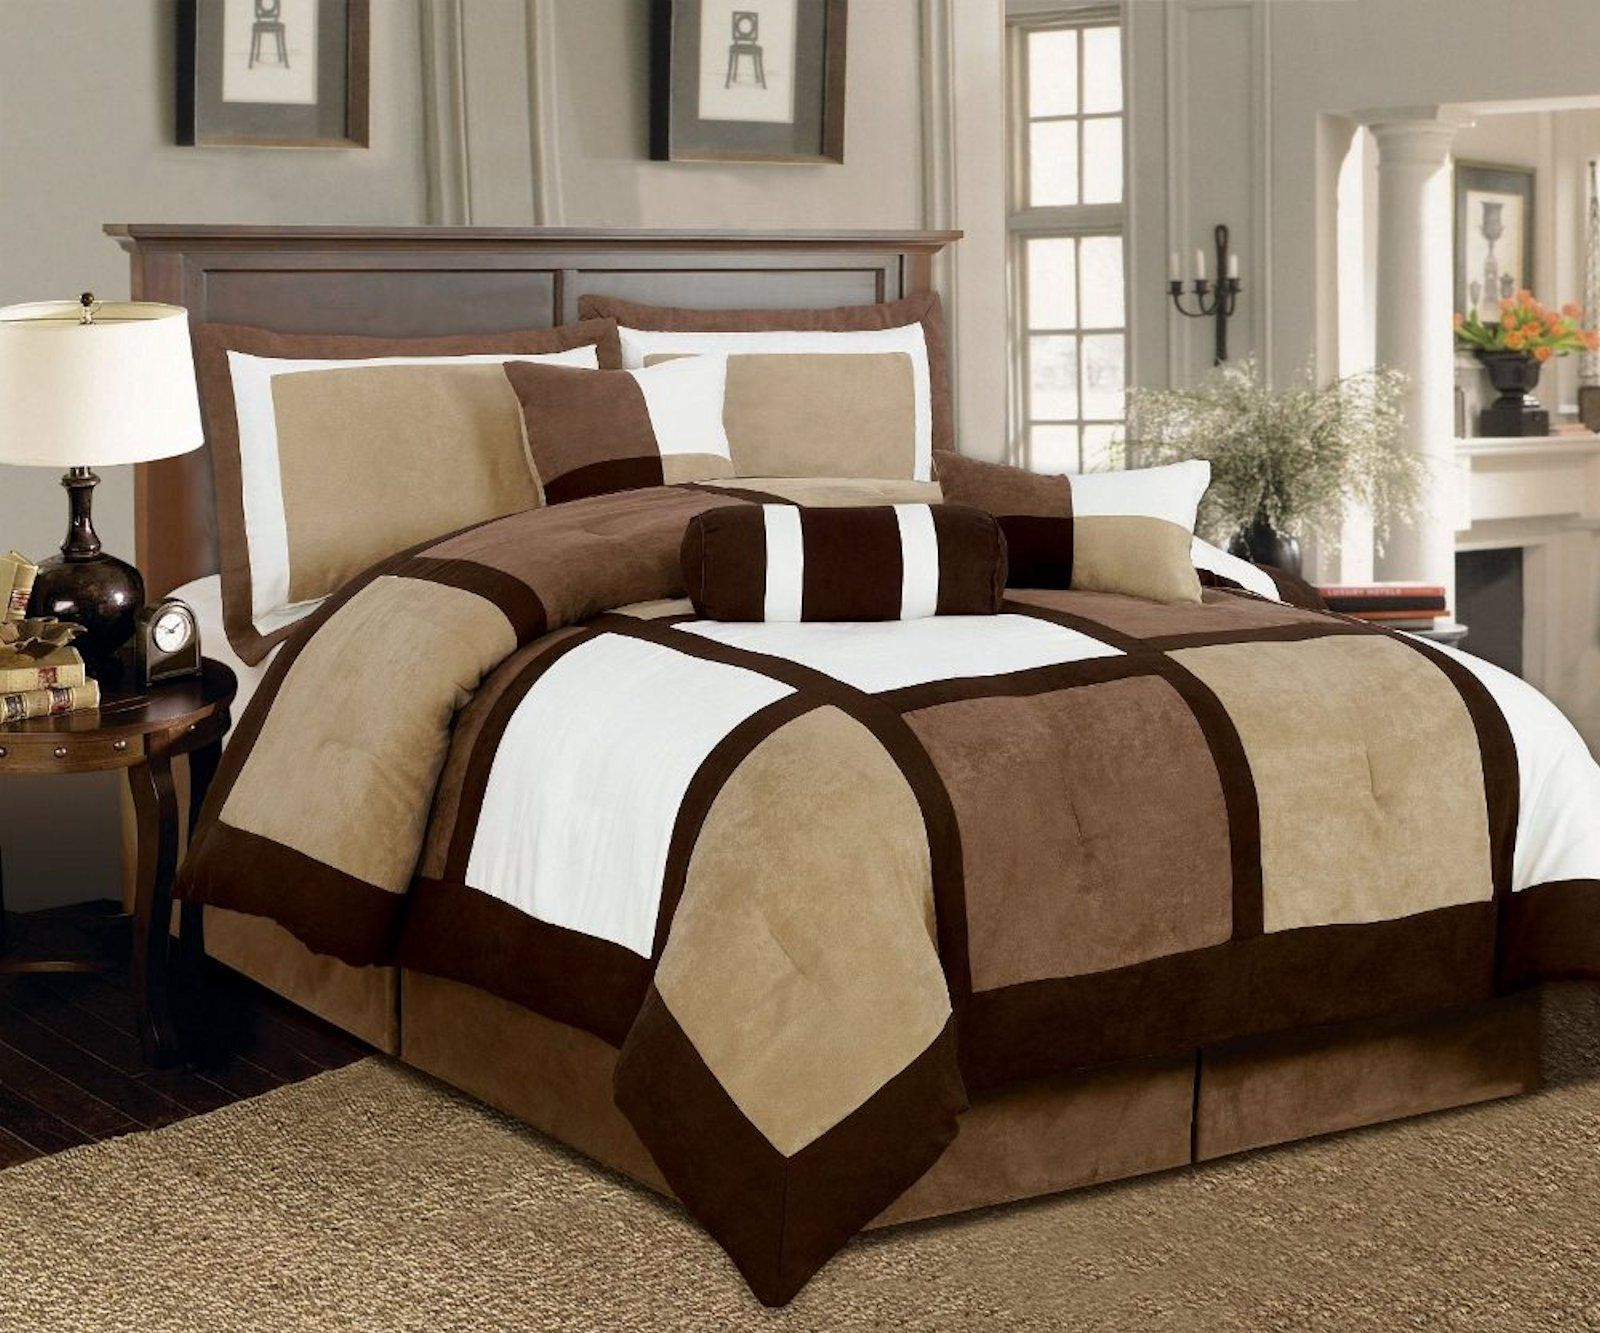 Legacy decor 7 pieces brown beige micro suede patchwork comforter set bed in a bag washable king size